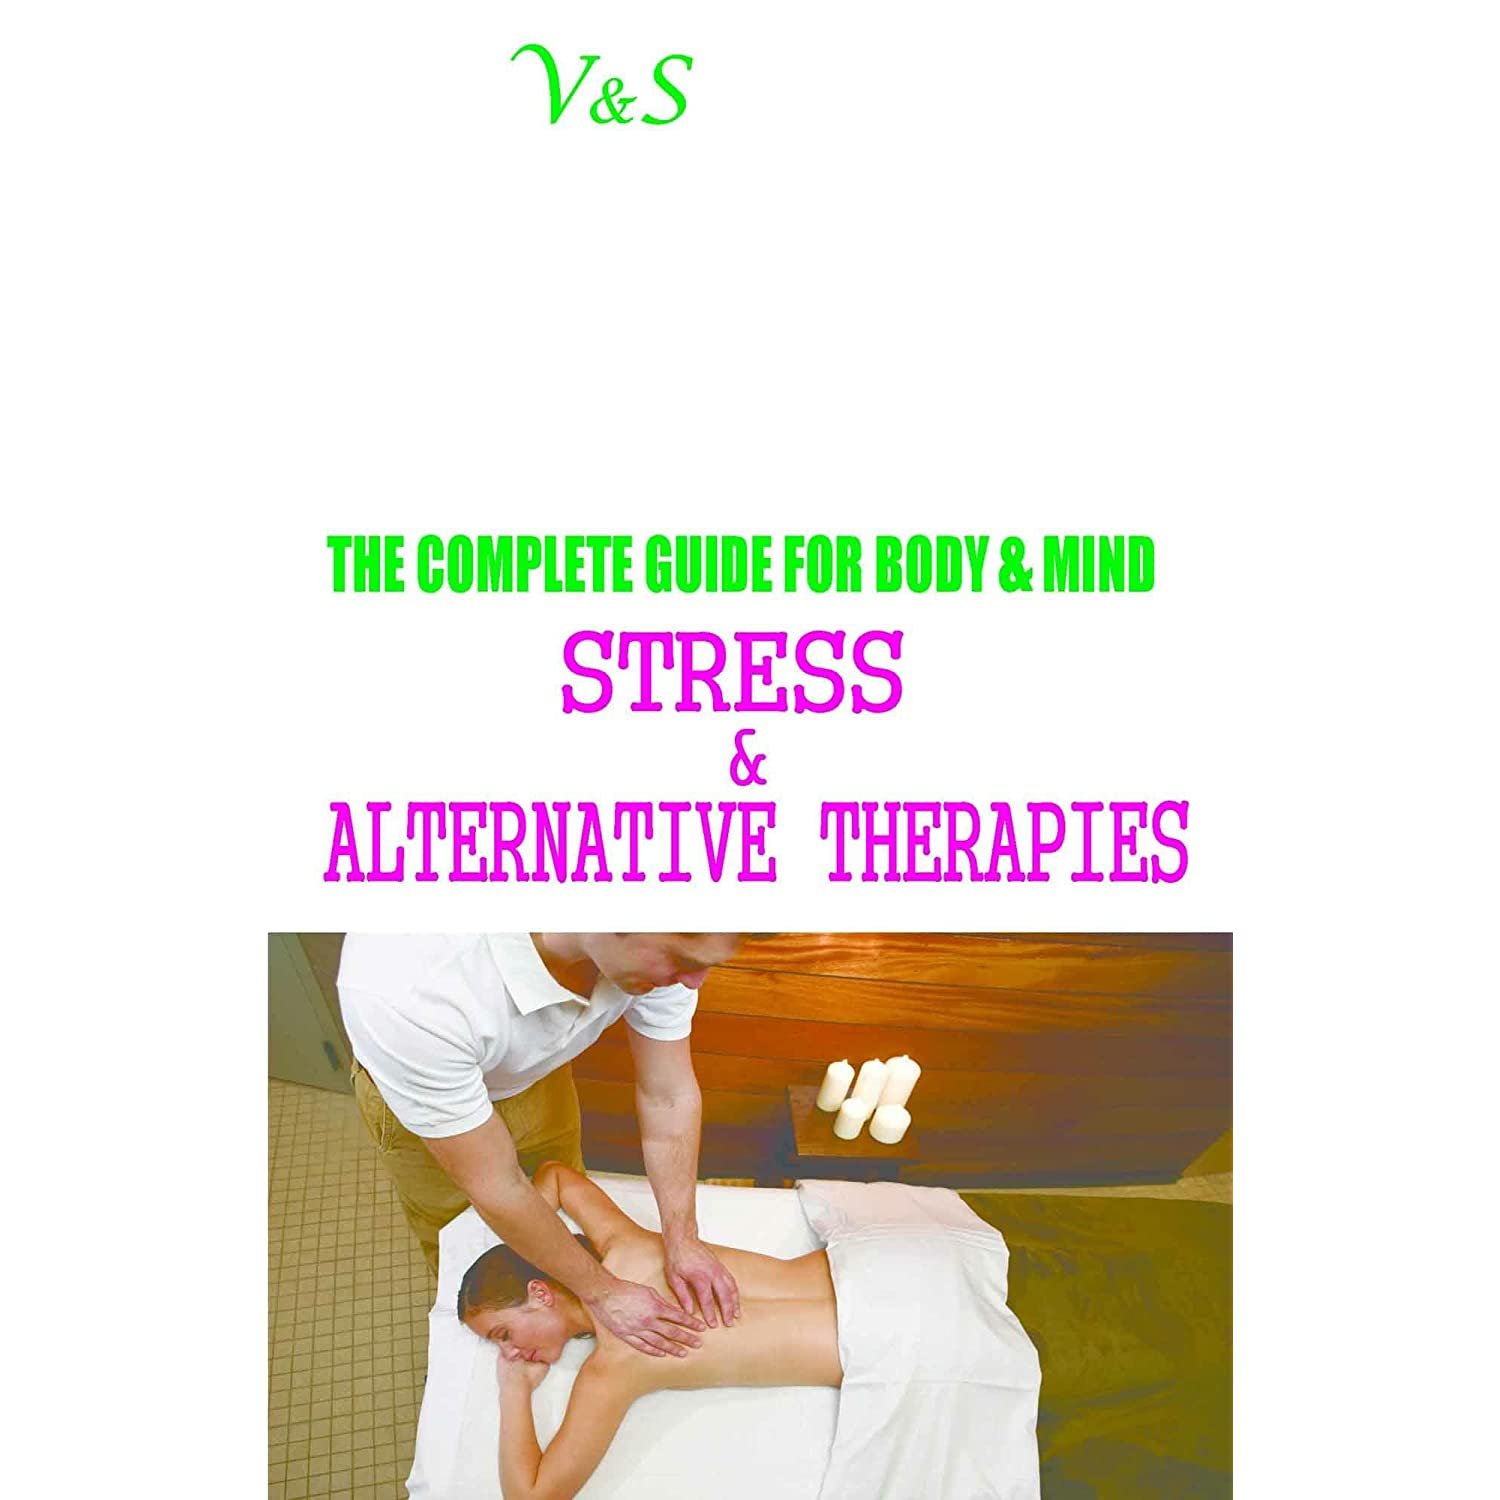 body essay mind stress The body-mind connection of stress (45 minutes) section your life investigative questions what are the body's physiological reactions to stress.